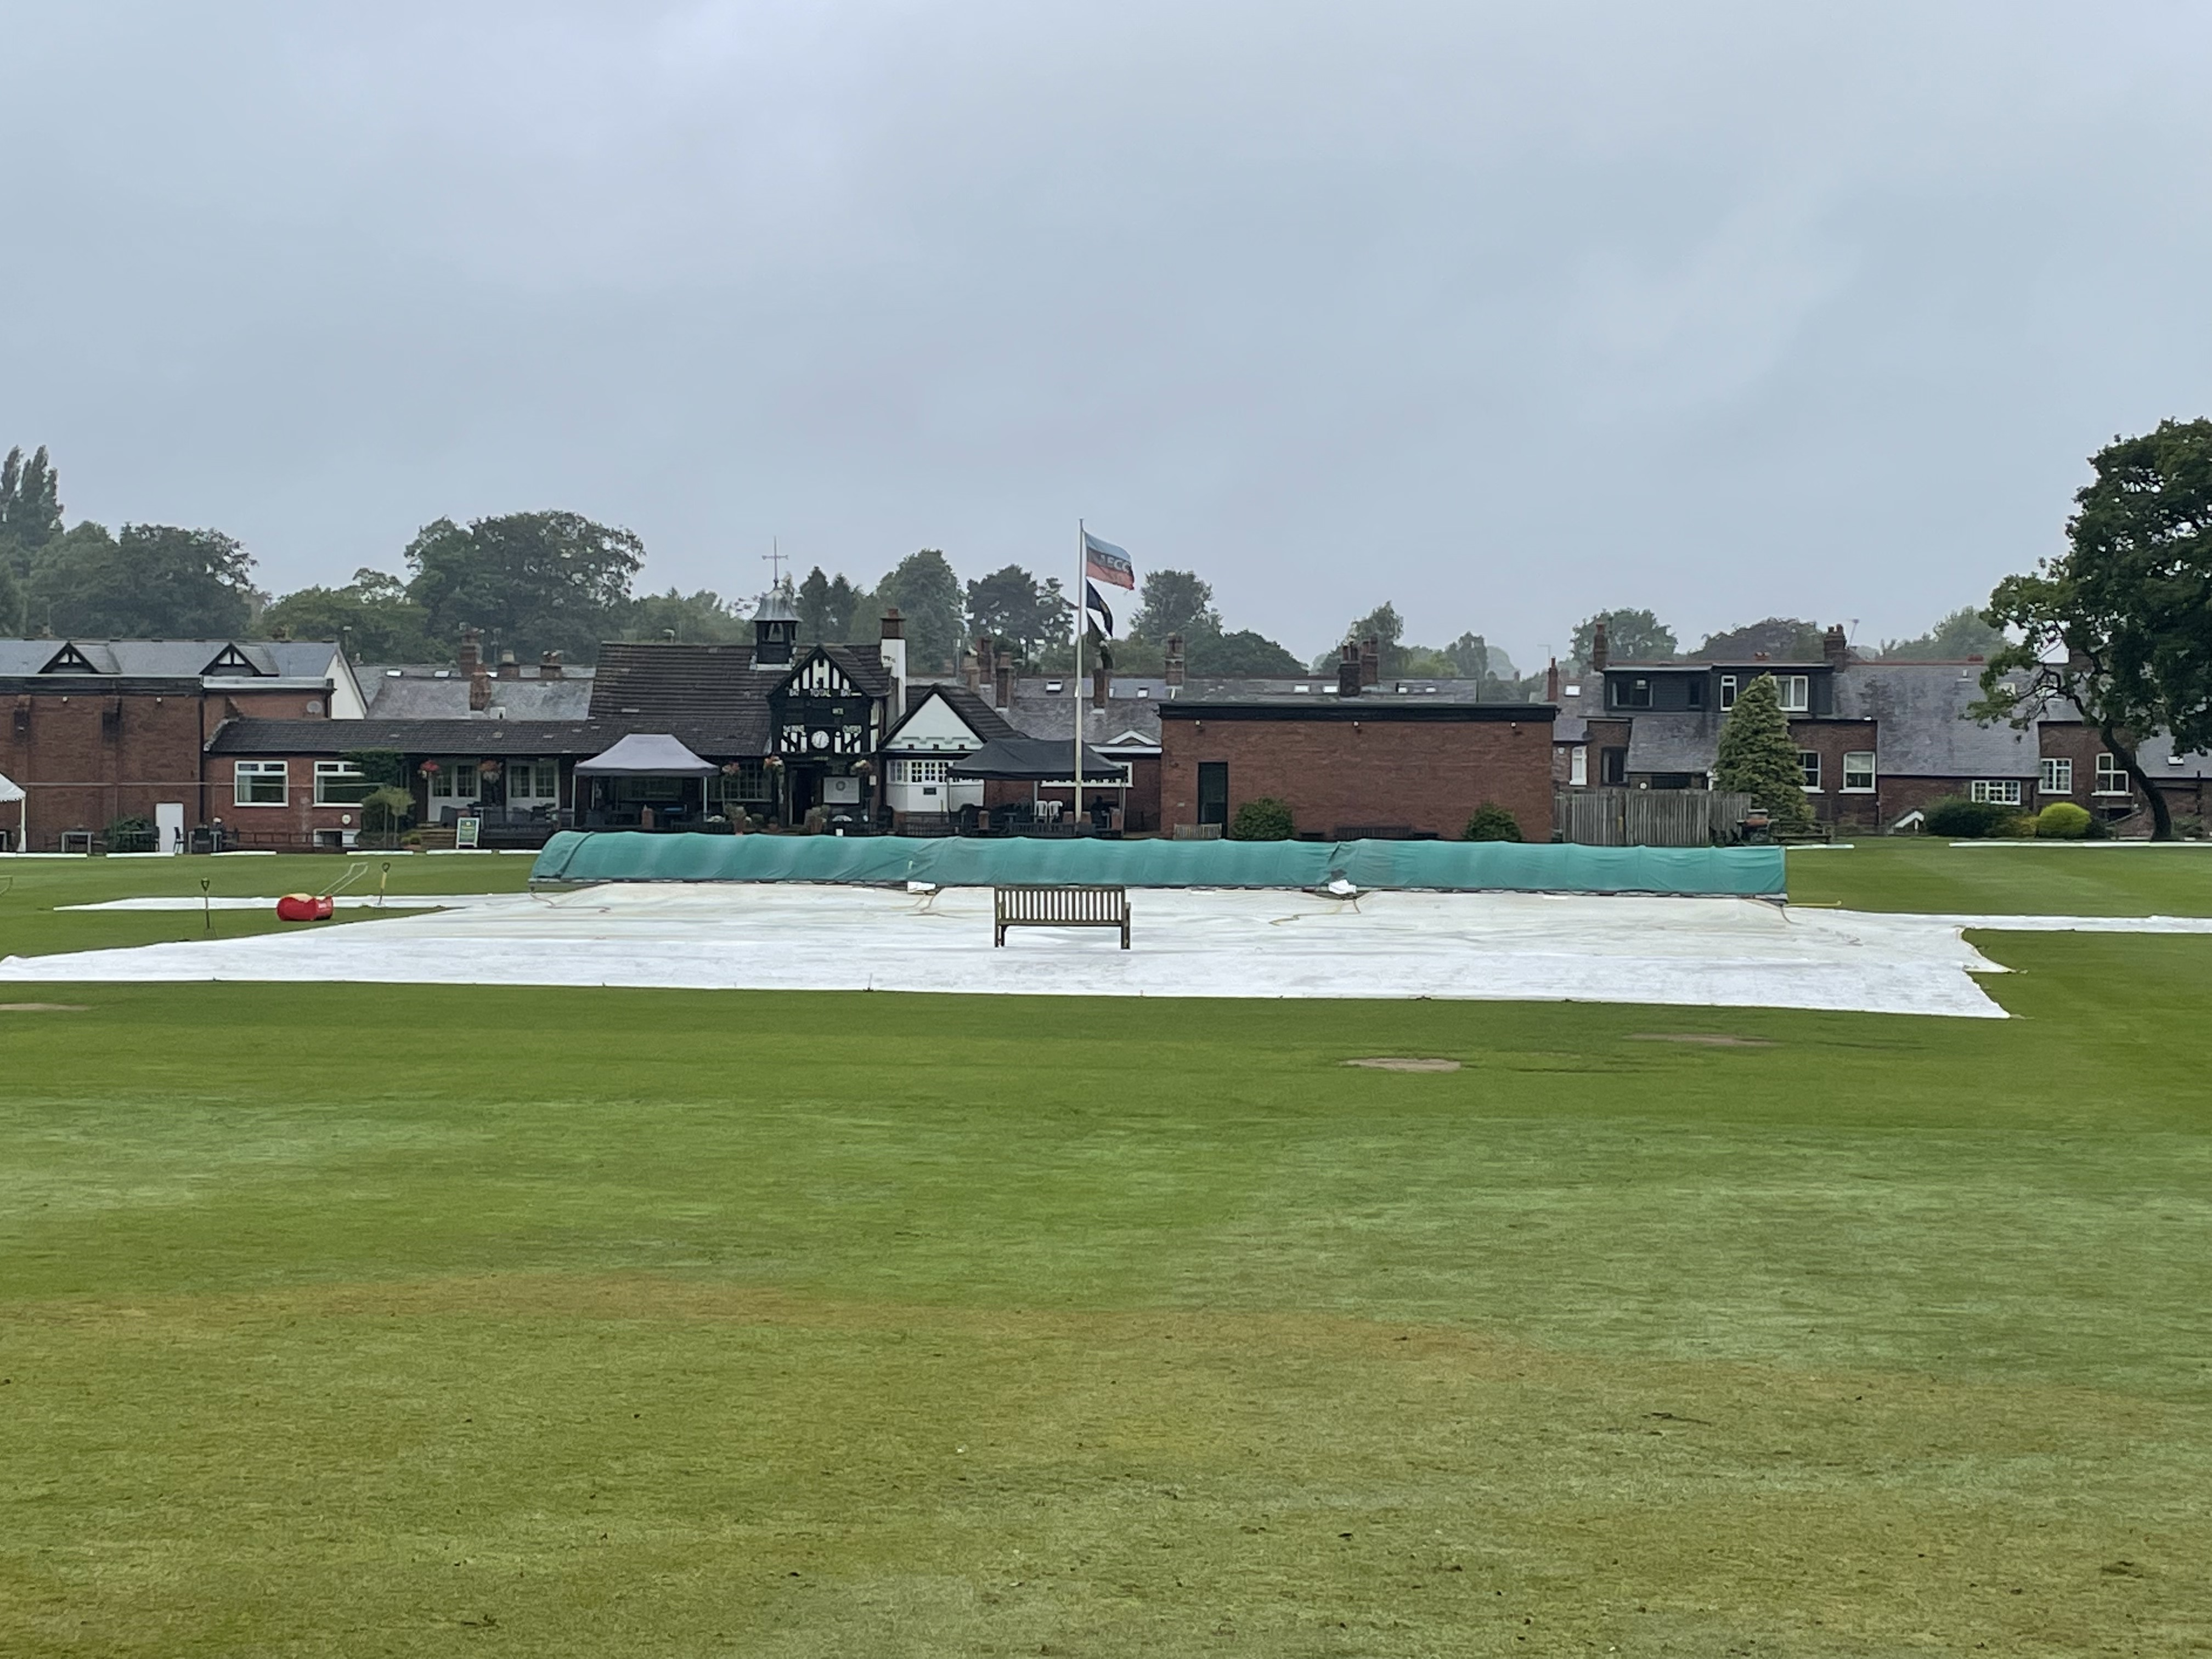 Wiltshire washout and Berks loss leaves title in the air